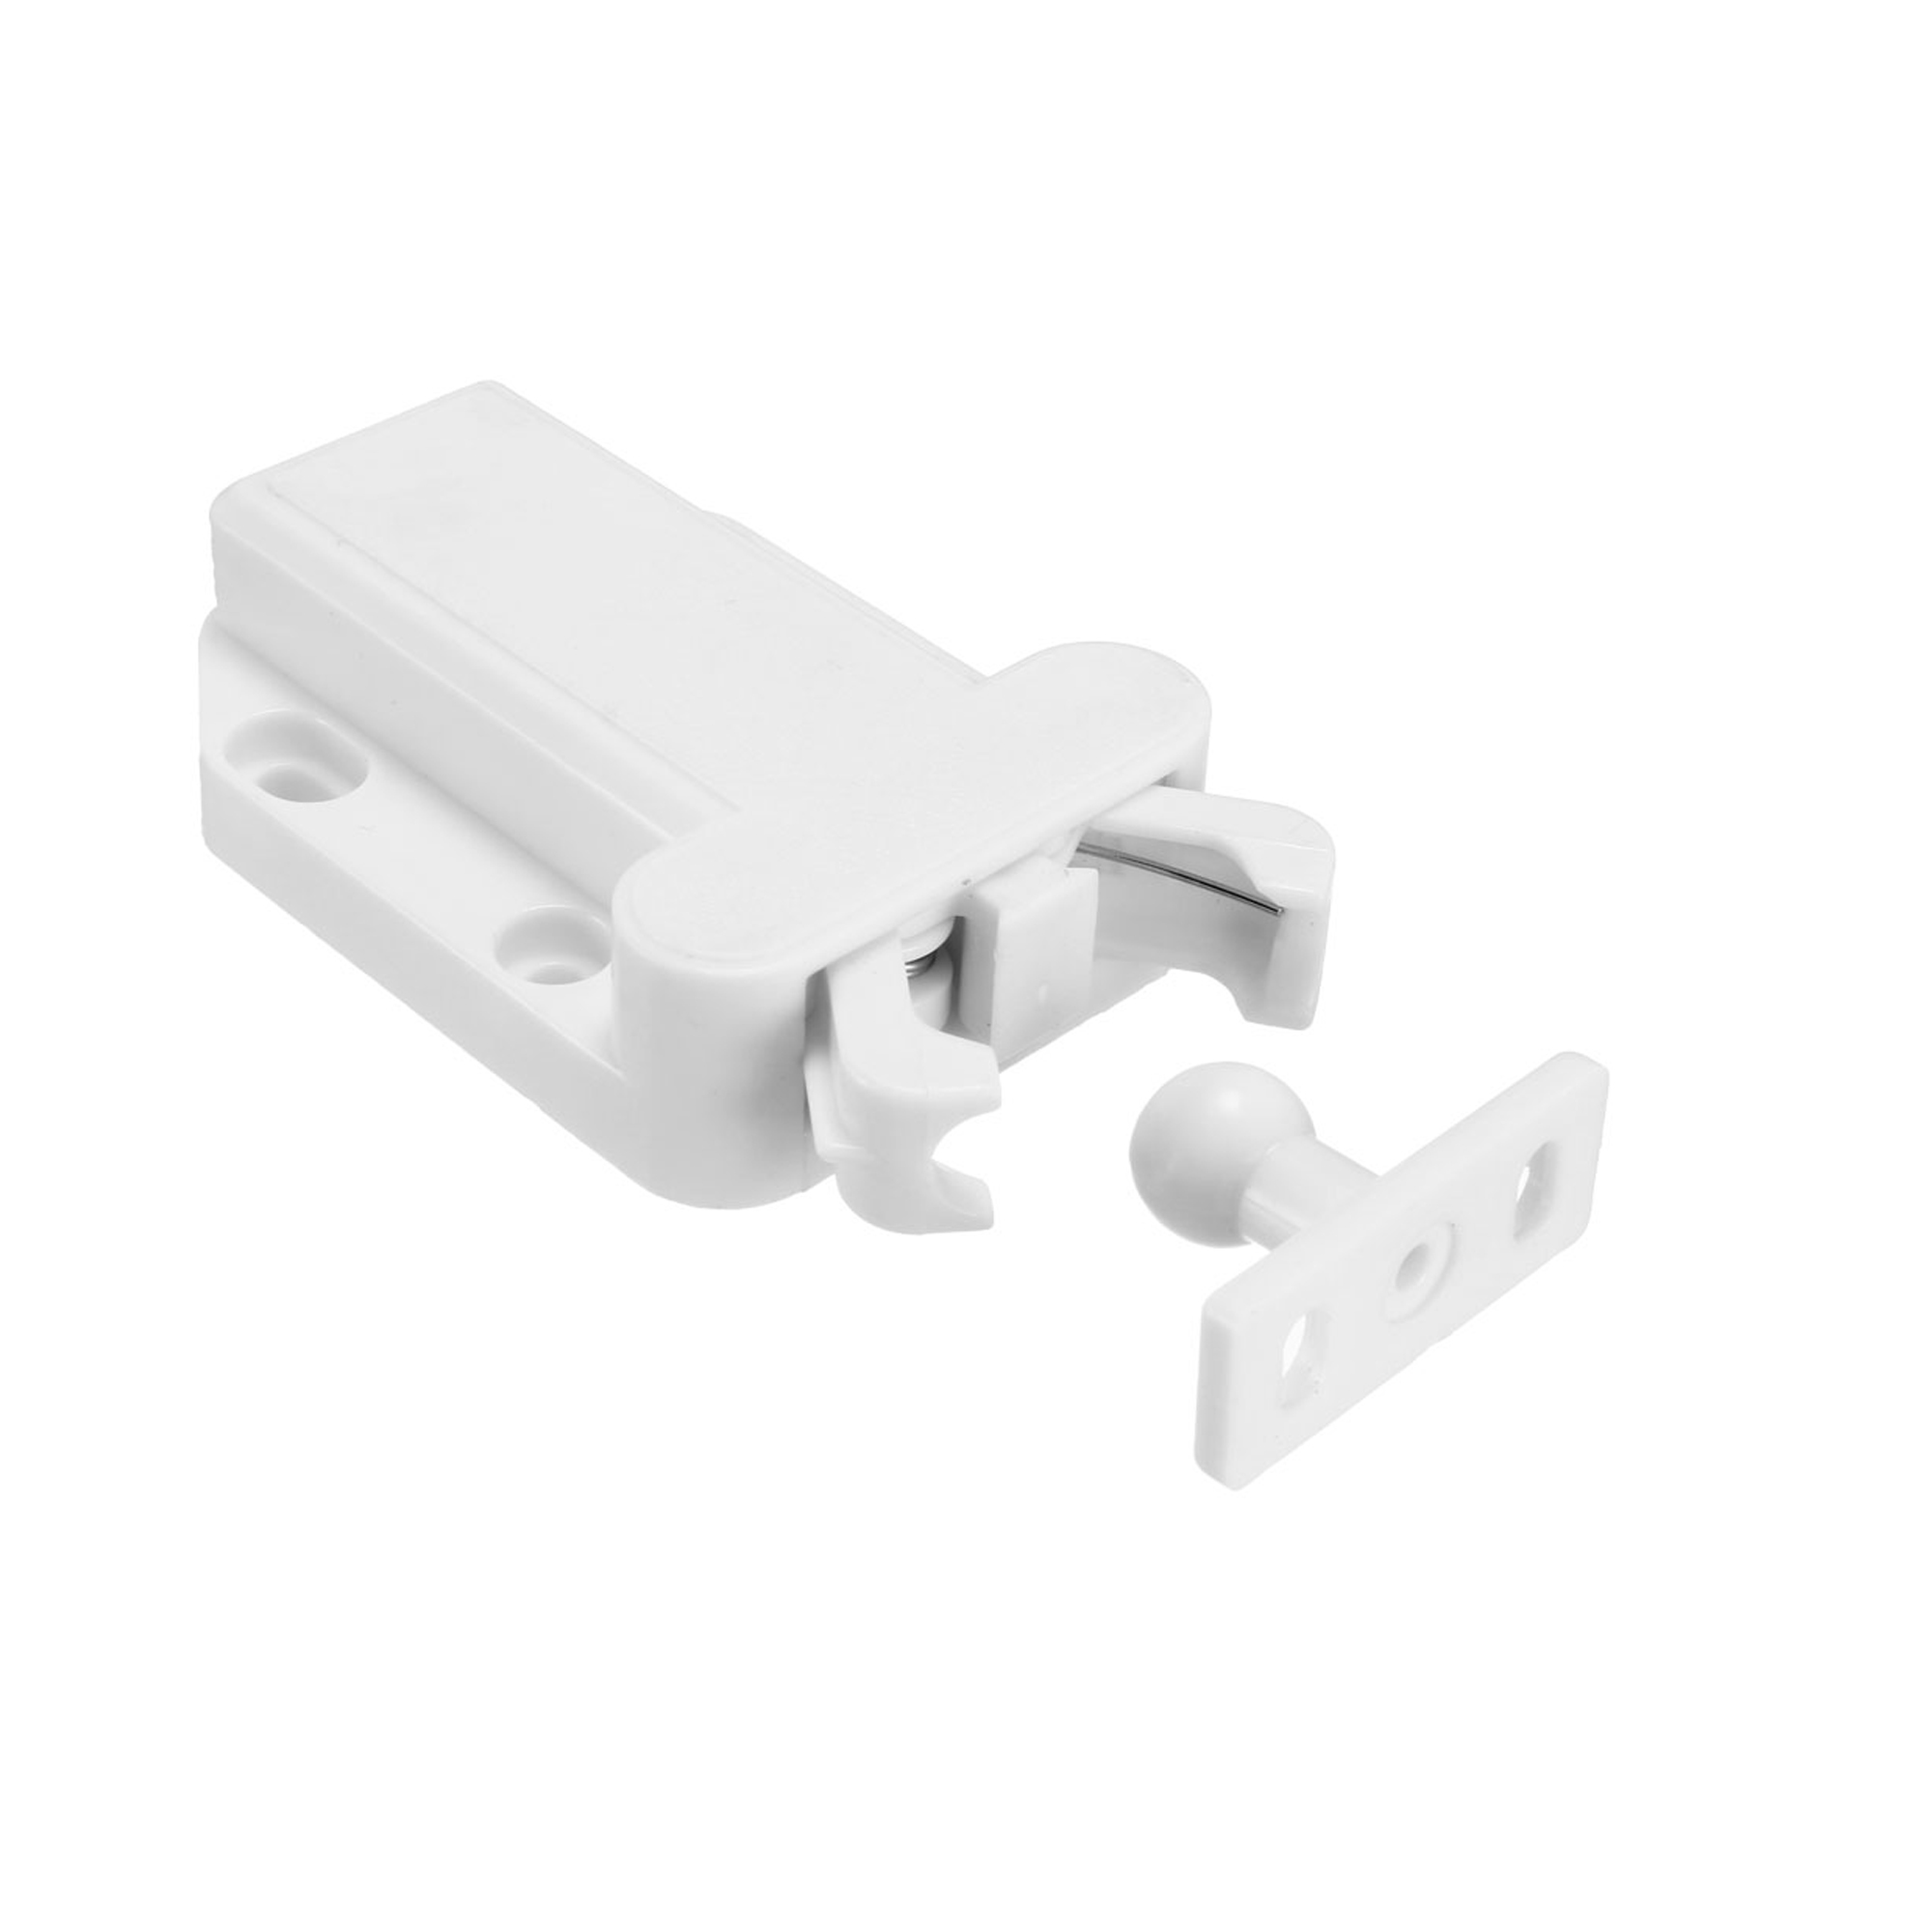 Push Open Latch Lock Touch Catch for Bedroom Cabinet Cupboard Drawer White 5Pcs - image 5 of 8